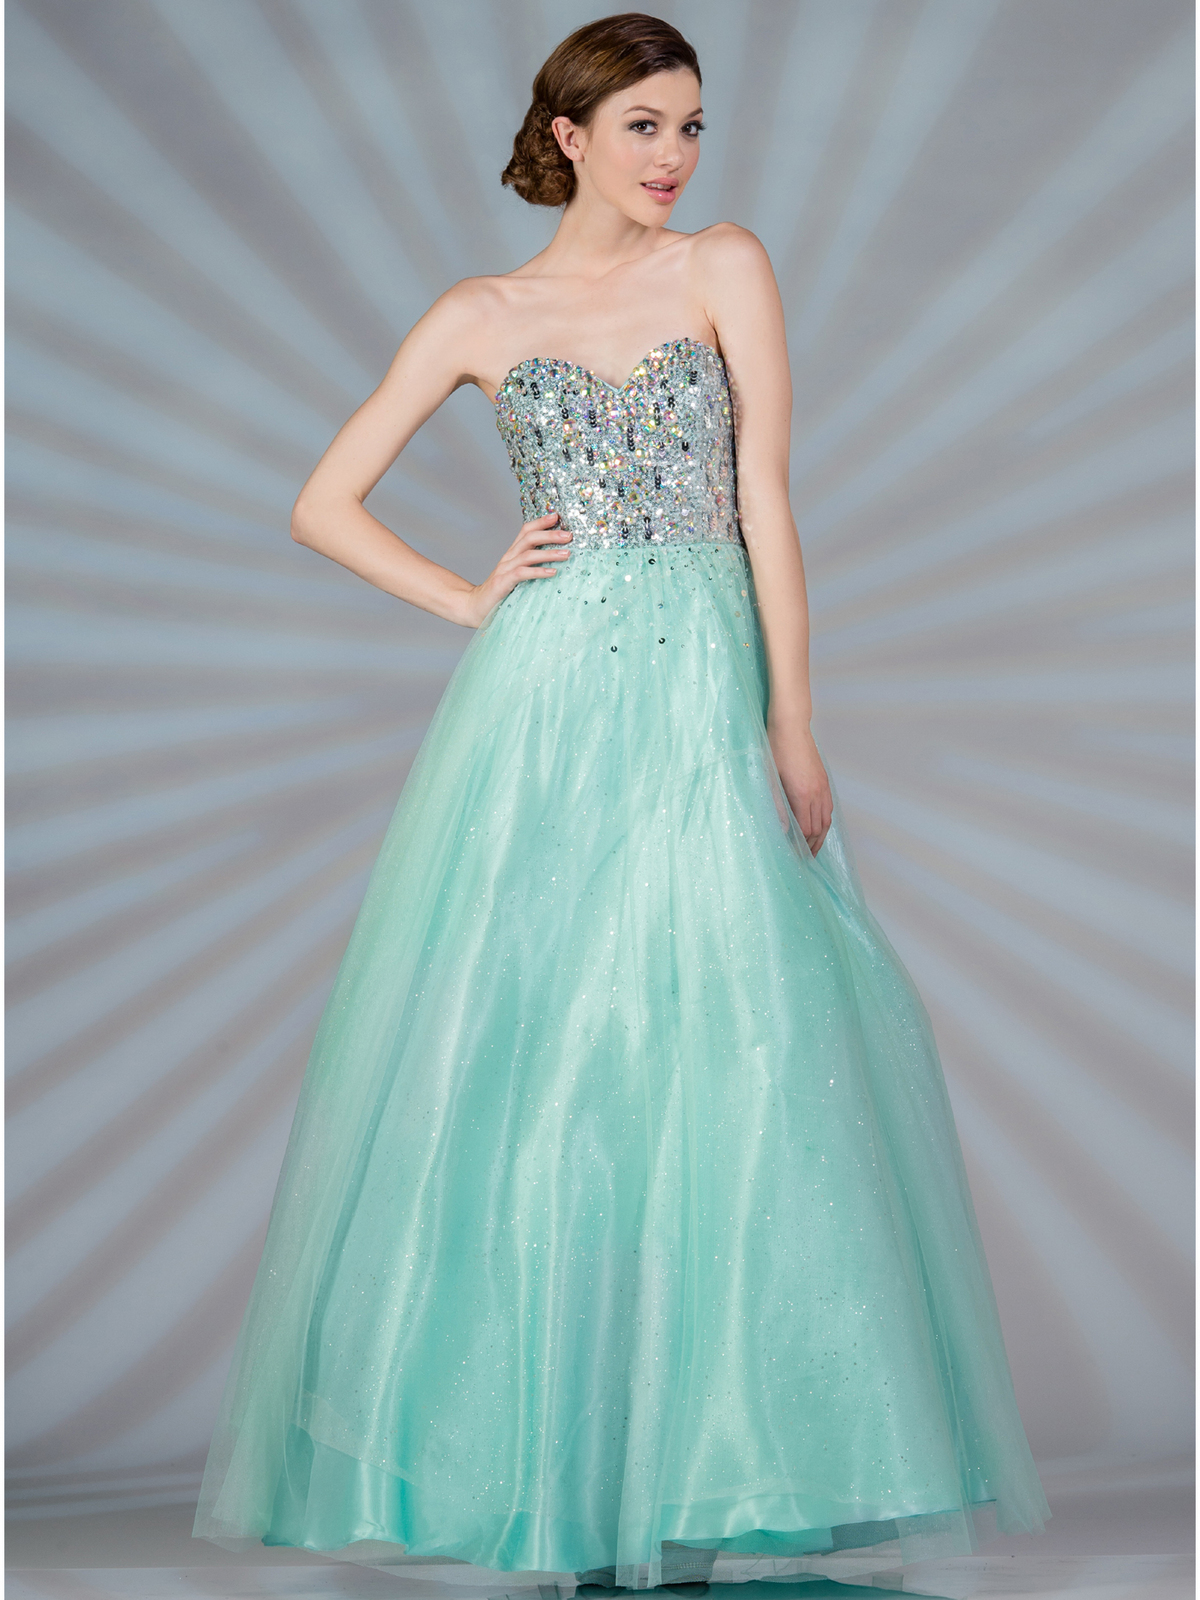 Mint Beaded Fairytale Prom Dress | Sung Boutique L.A.